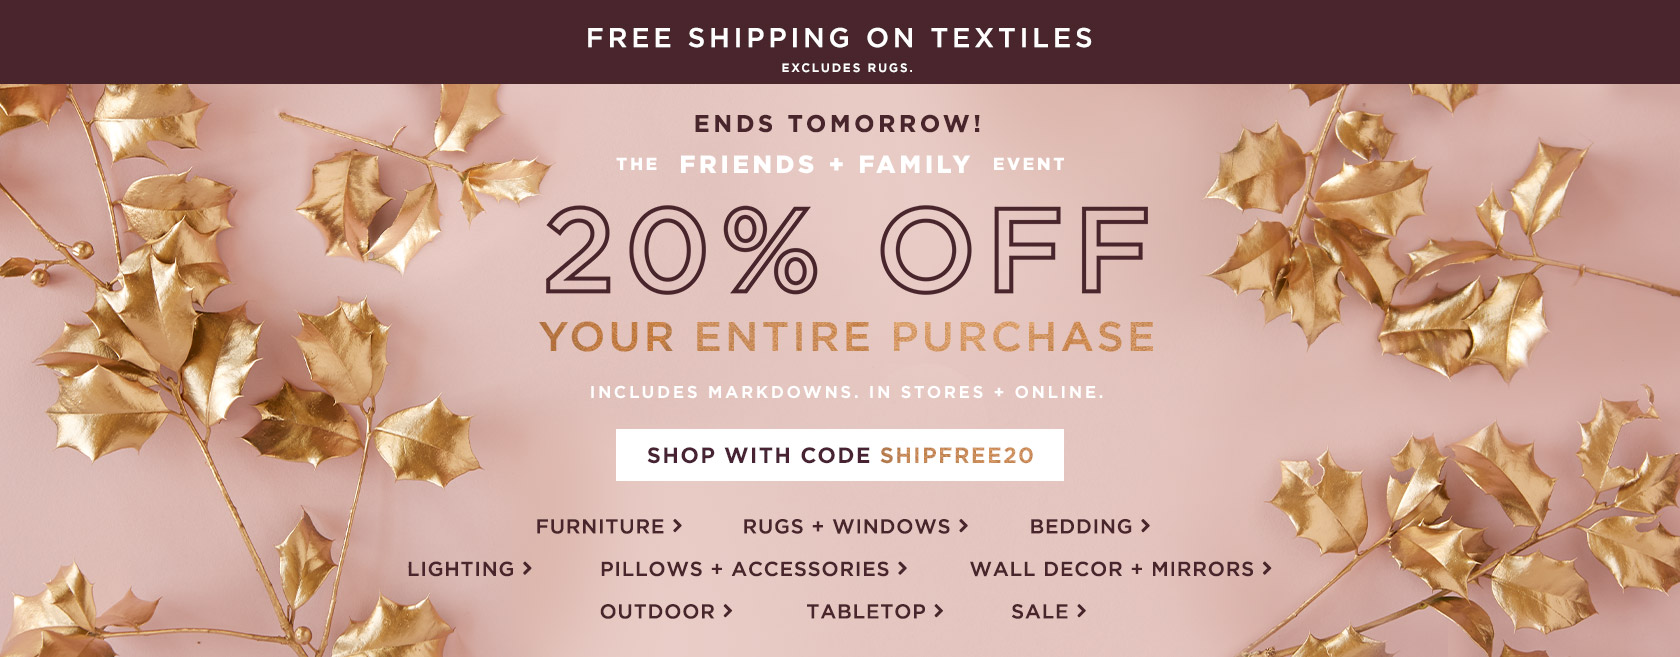 Ends Tomorrow! The Friends + Family Event - 20% Off Your Entire Purchase + Free Shipping on Textiles With Code SHIPFREE20